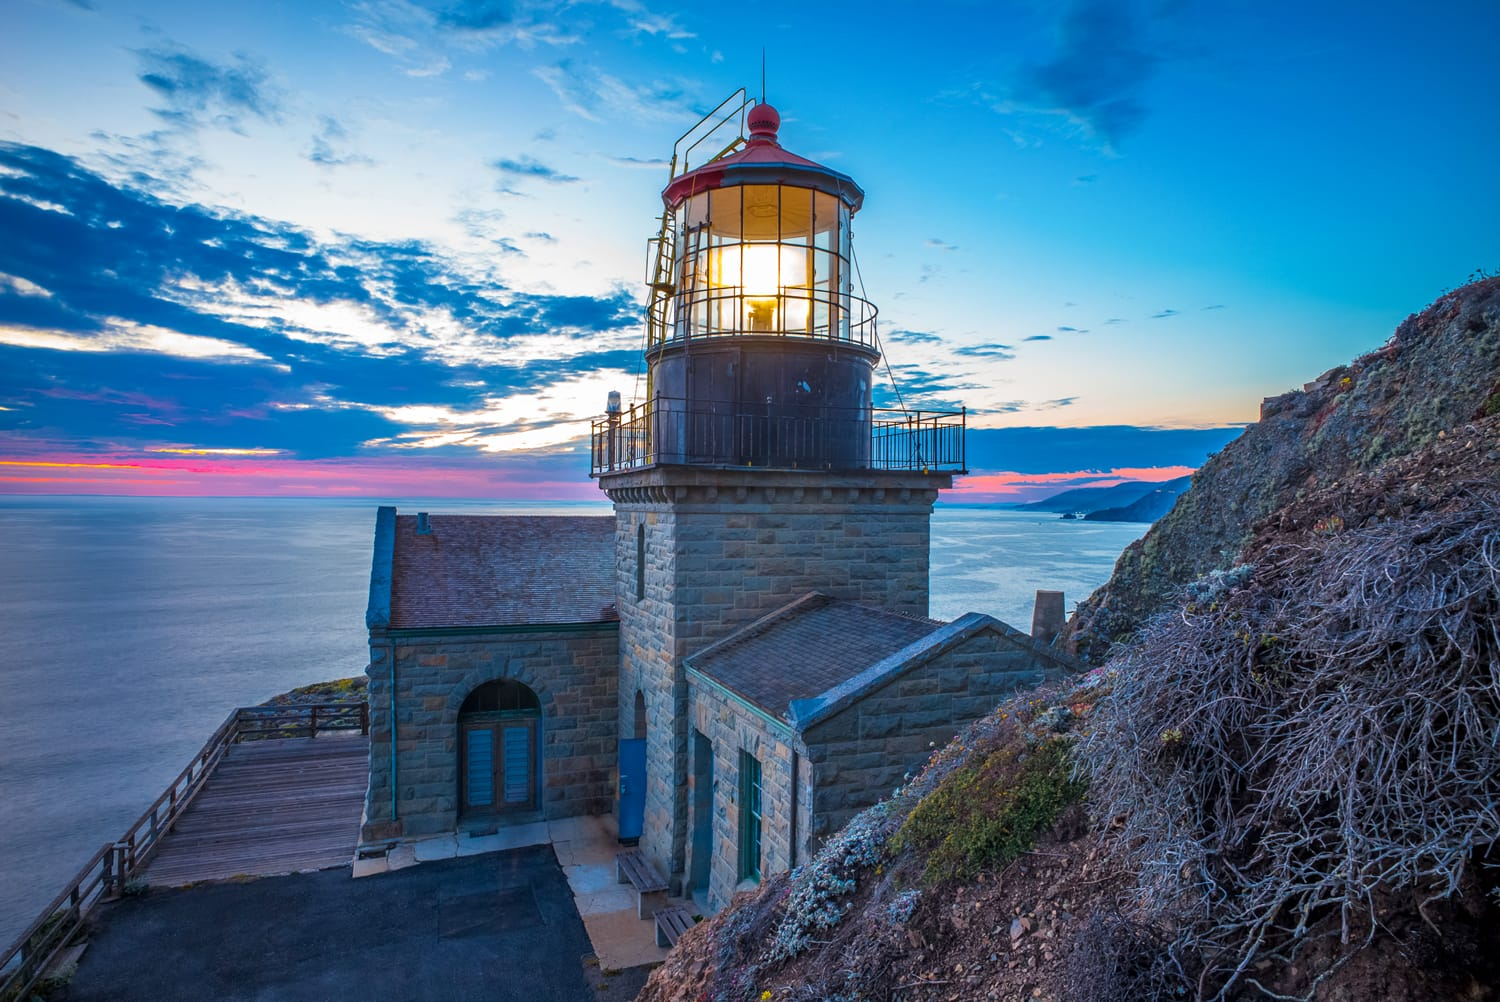 Point Sur lighthouse at sunset.